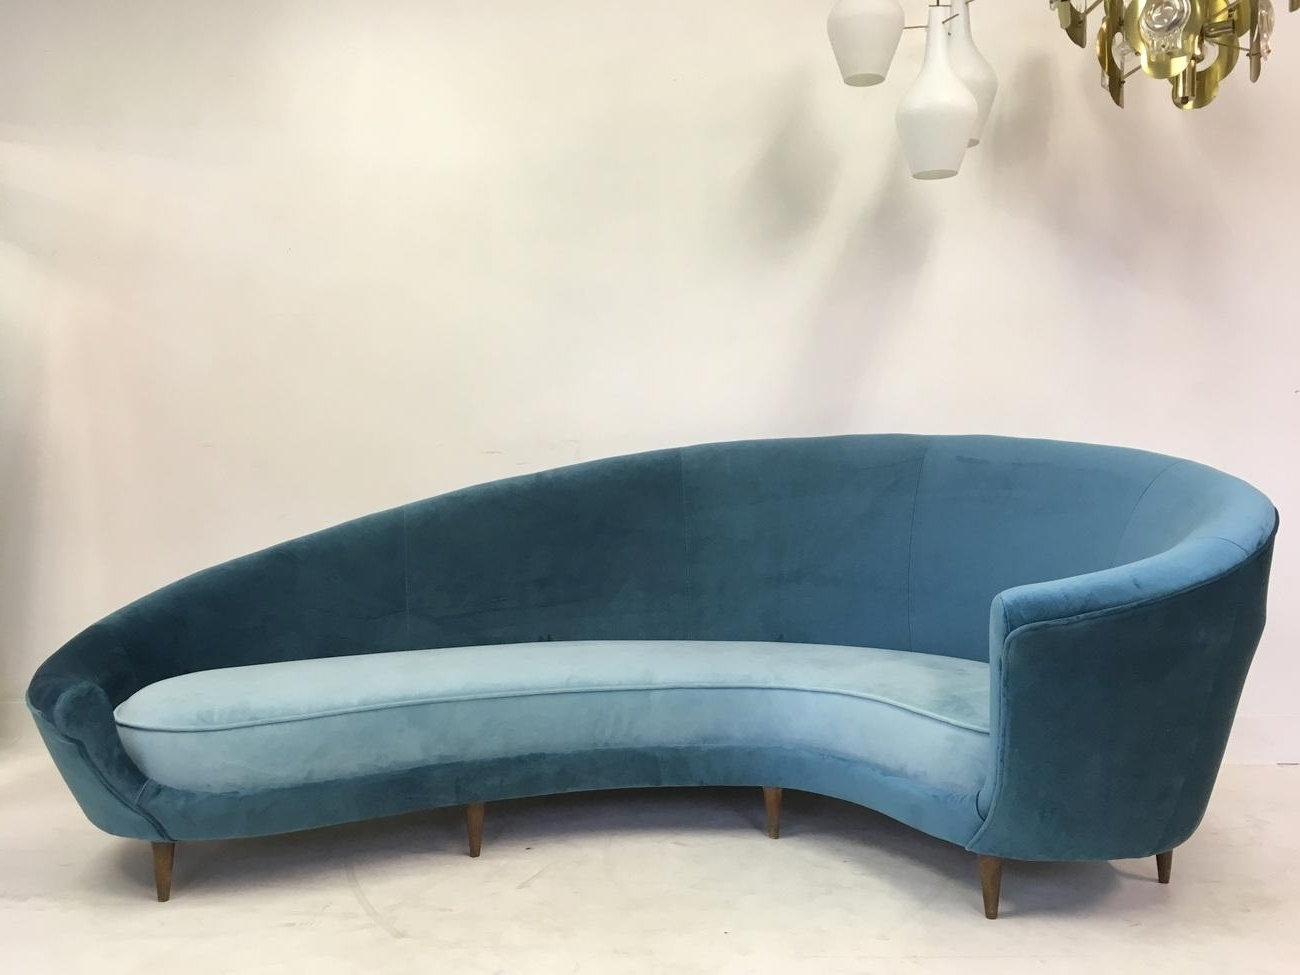 Italian Curved Velvet Sofa, 1950S For Sale At Pamono with Recent Velvet Sofas